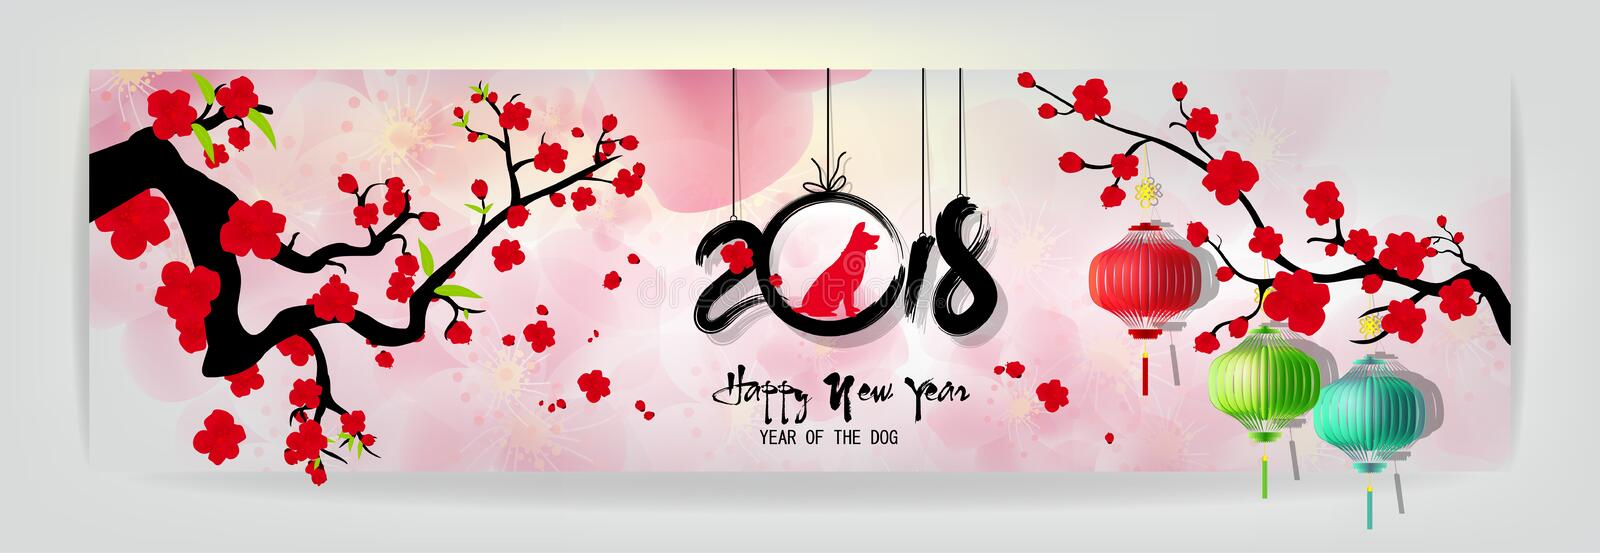 Download Set Banner Happy New Year 2018 Greeting Card And Chinese New Year Of The Dog, Cherry Blossom Background Stock Vector - Illustration of celebrate, invitation: 101703714